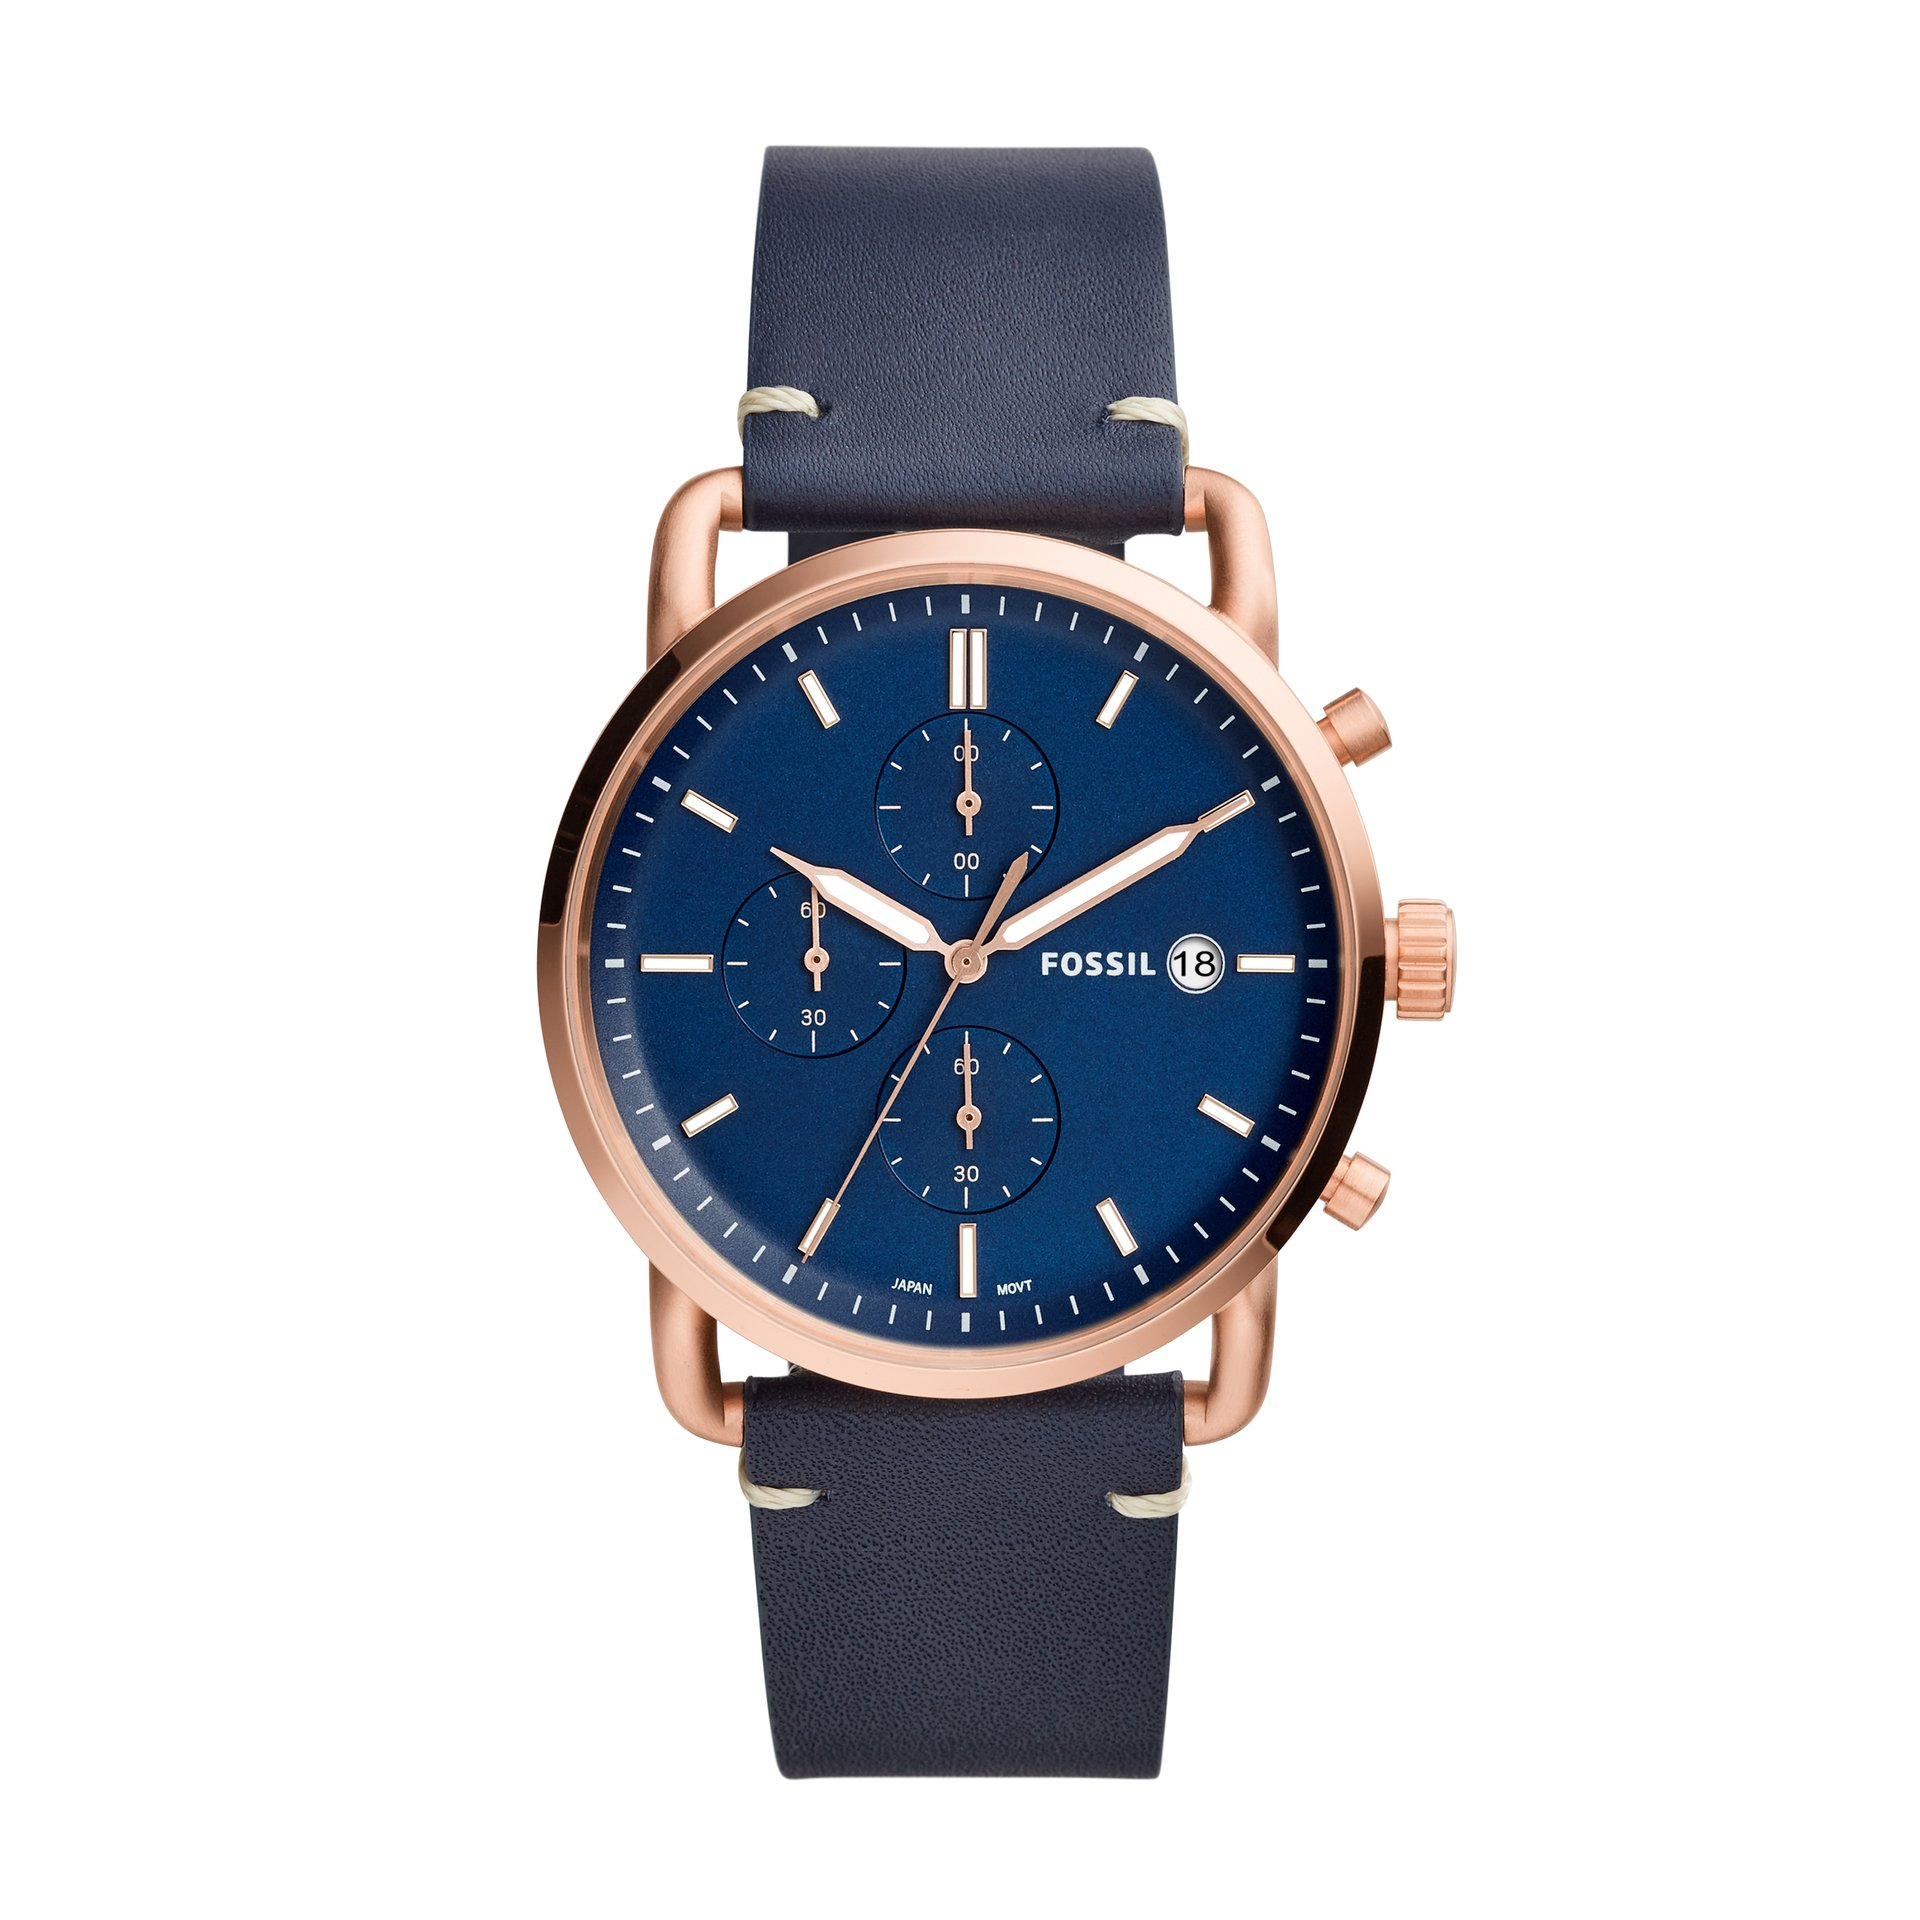 Fossil Men's Chronograph Commuter Navy Leather Strap Watch FS5404